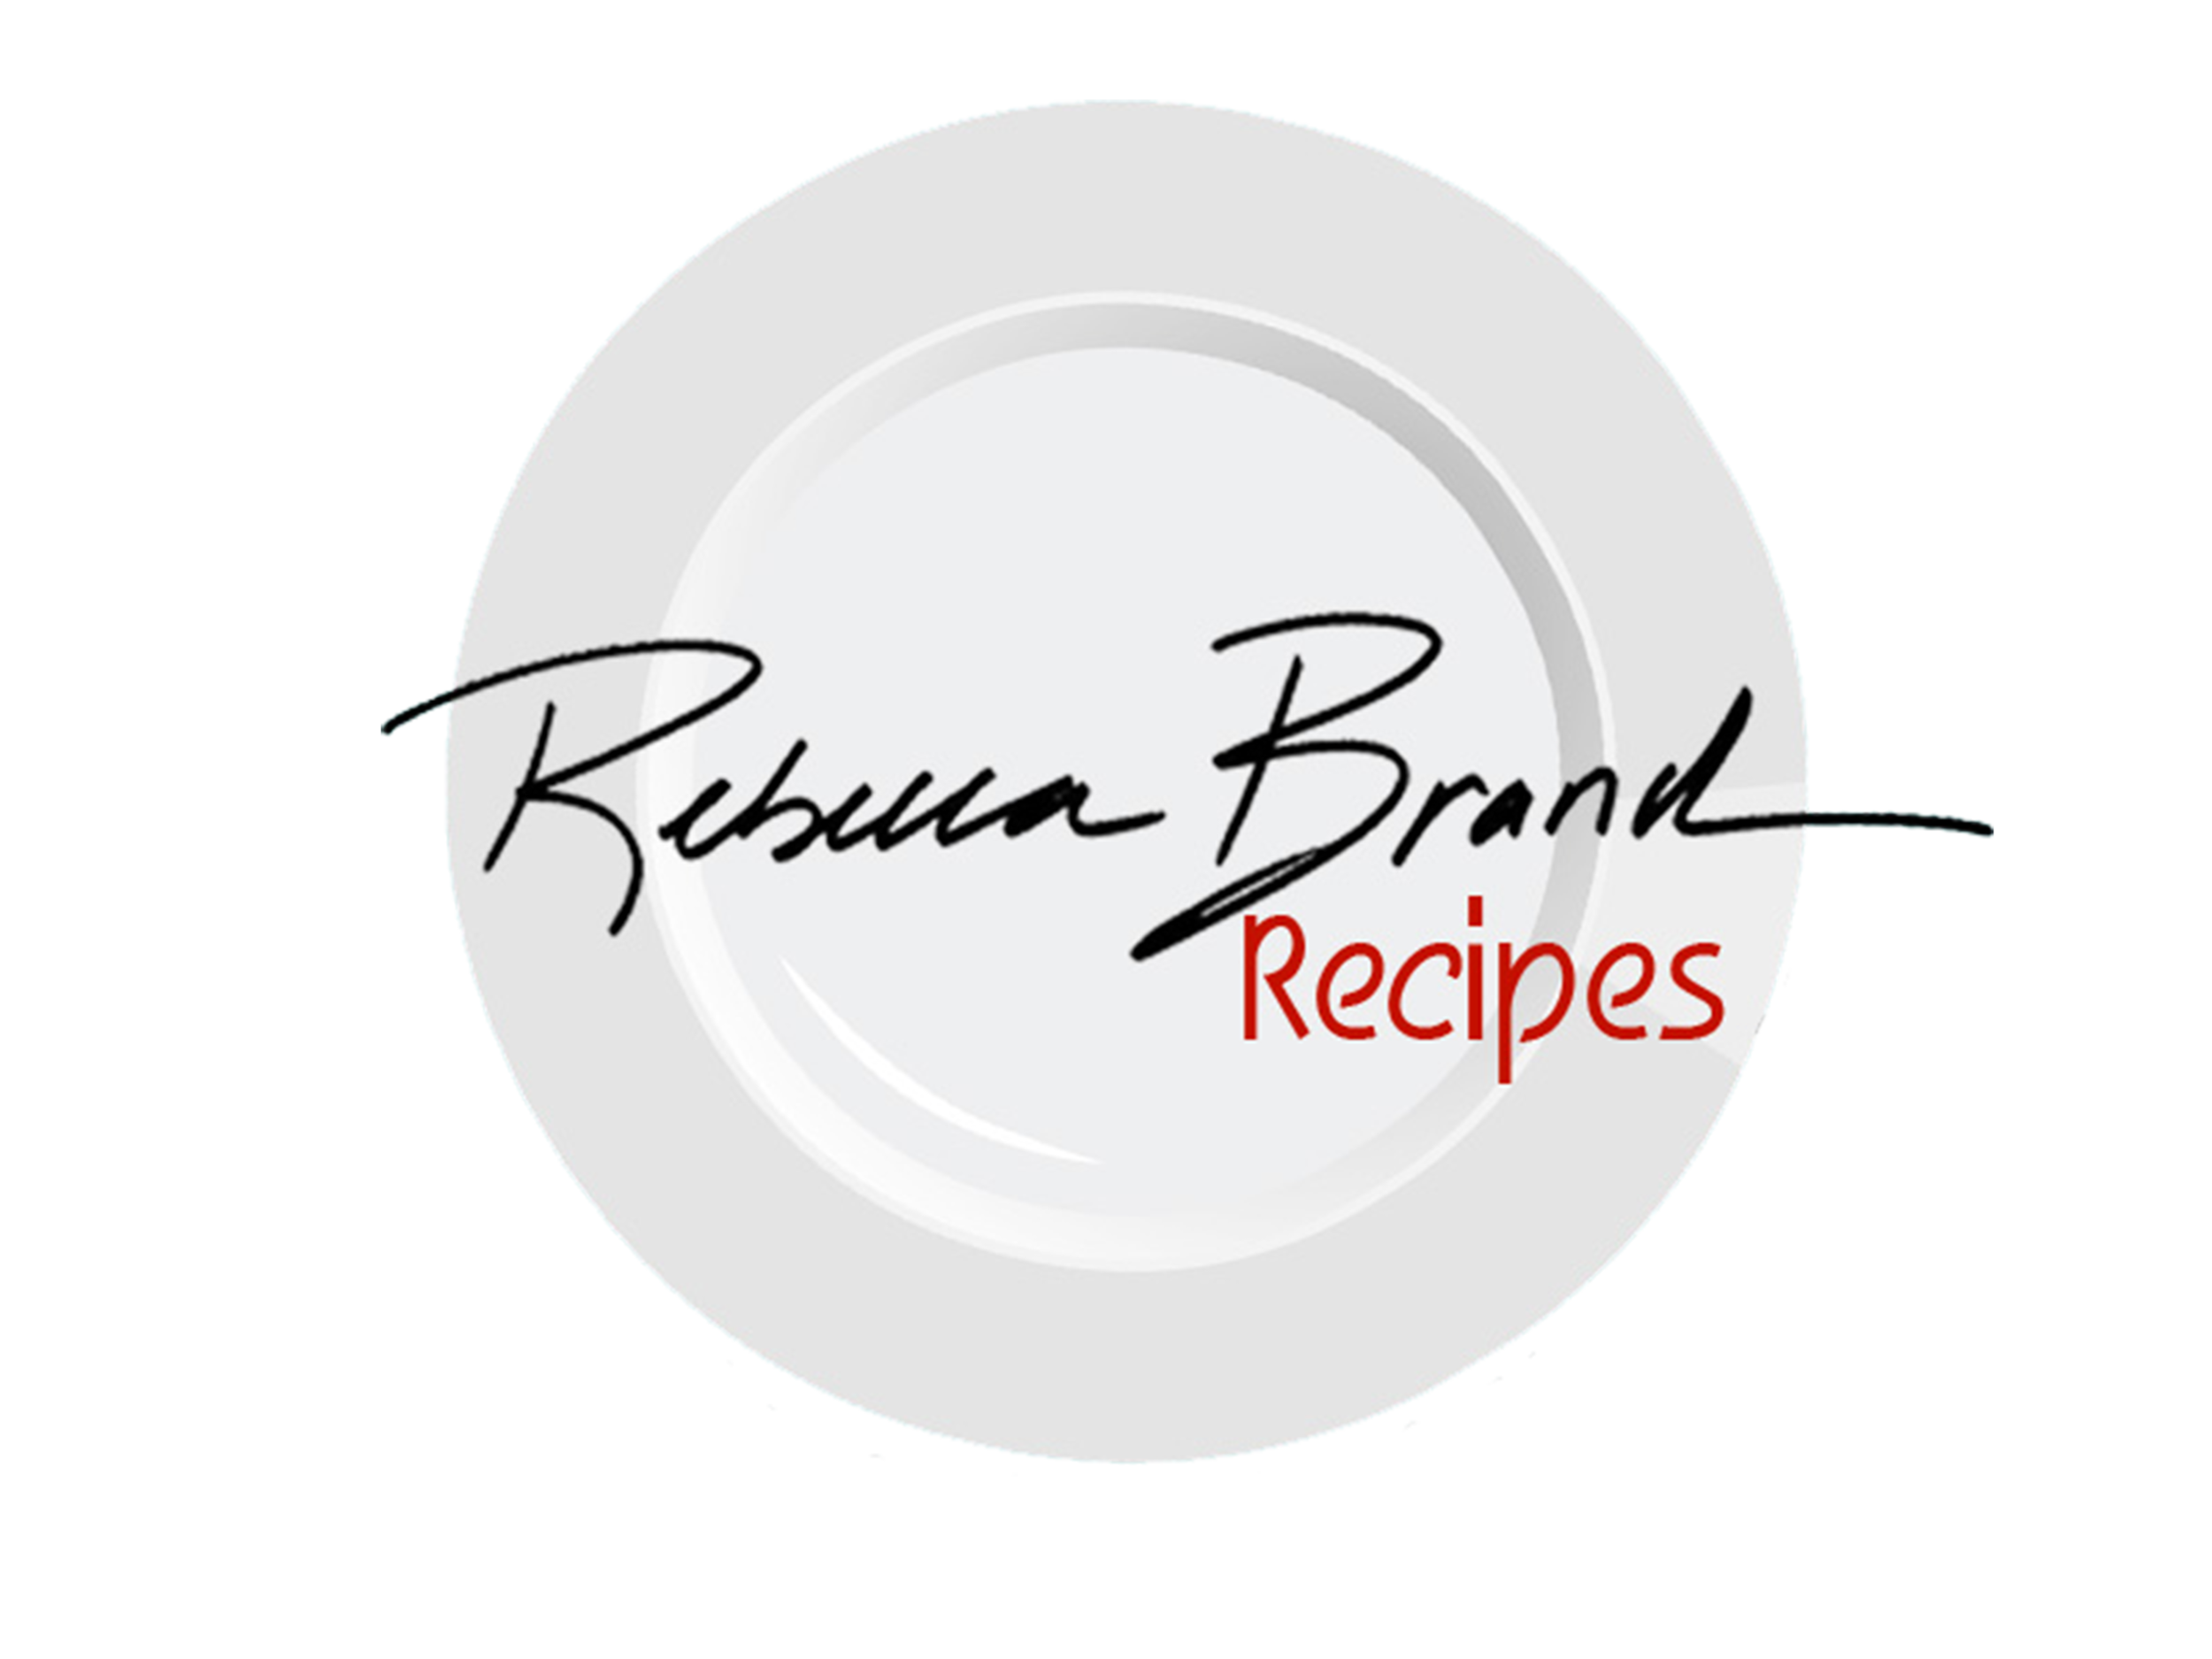 rebeccabrandrecipes Plate Only.png